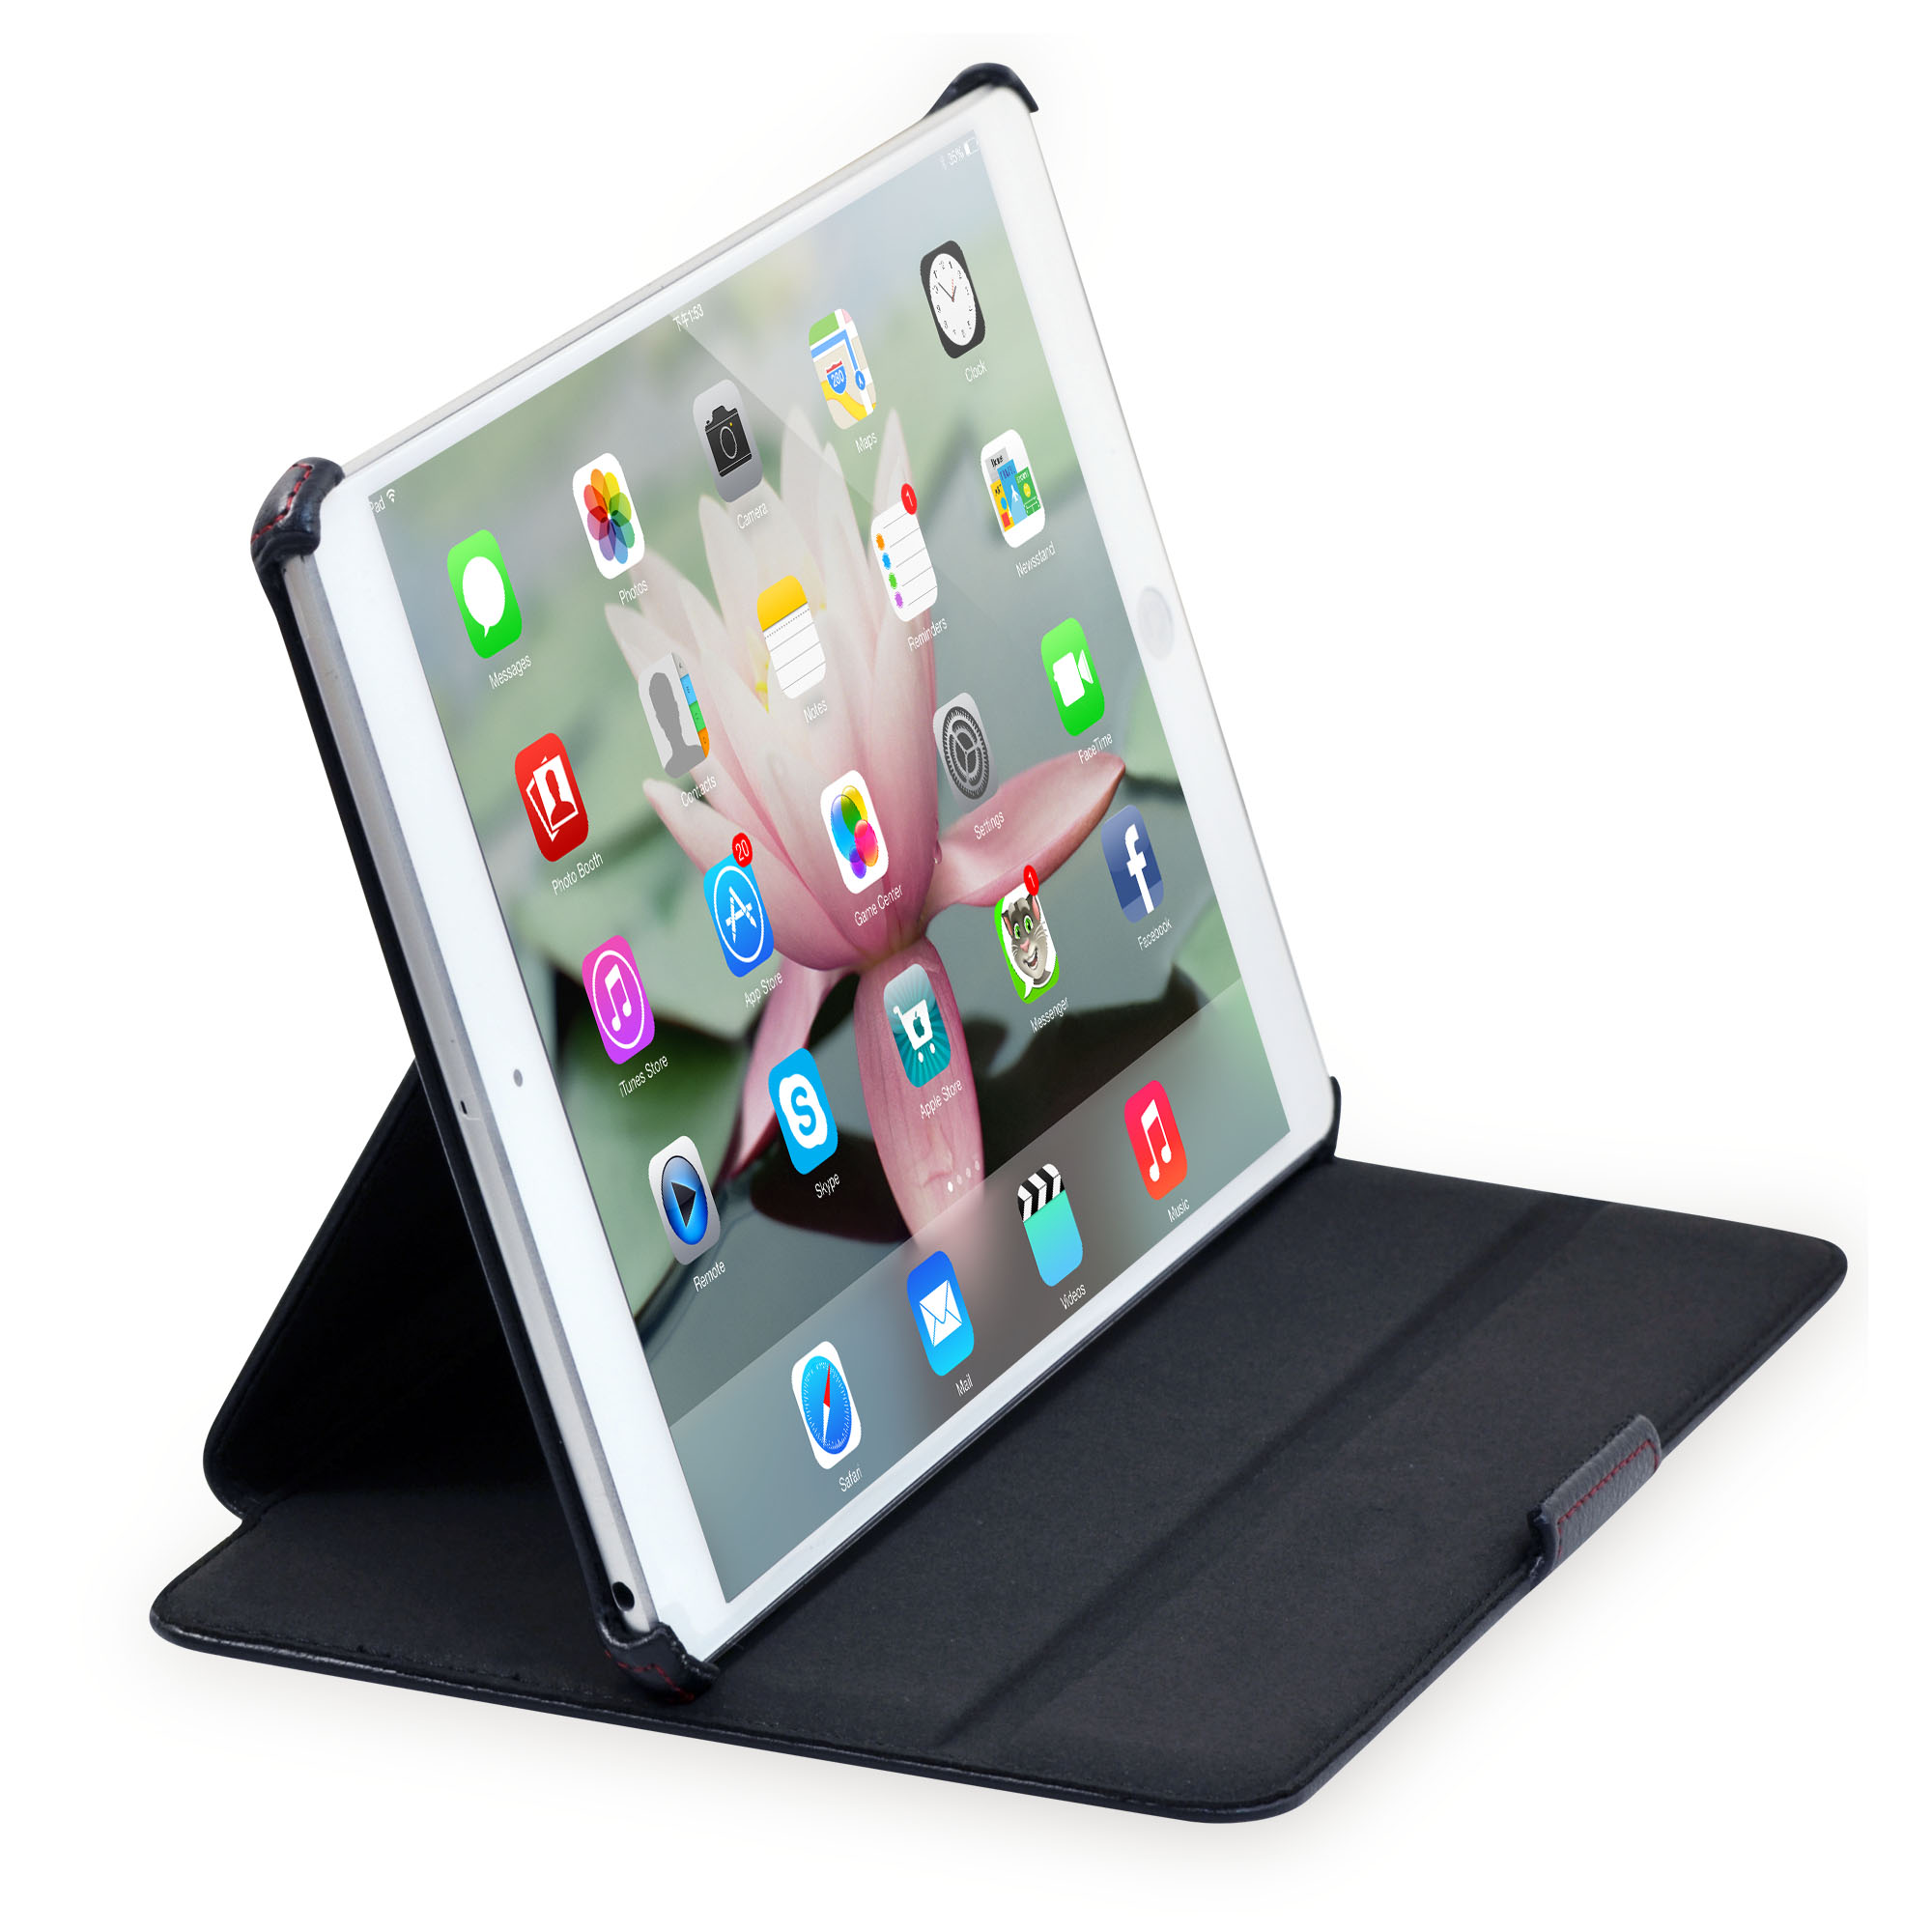 leicke ipad air ipad 5 schutzh lle h lle case tasche. Black Bedroom Furniture Sets. Home Design Ideas